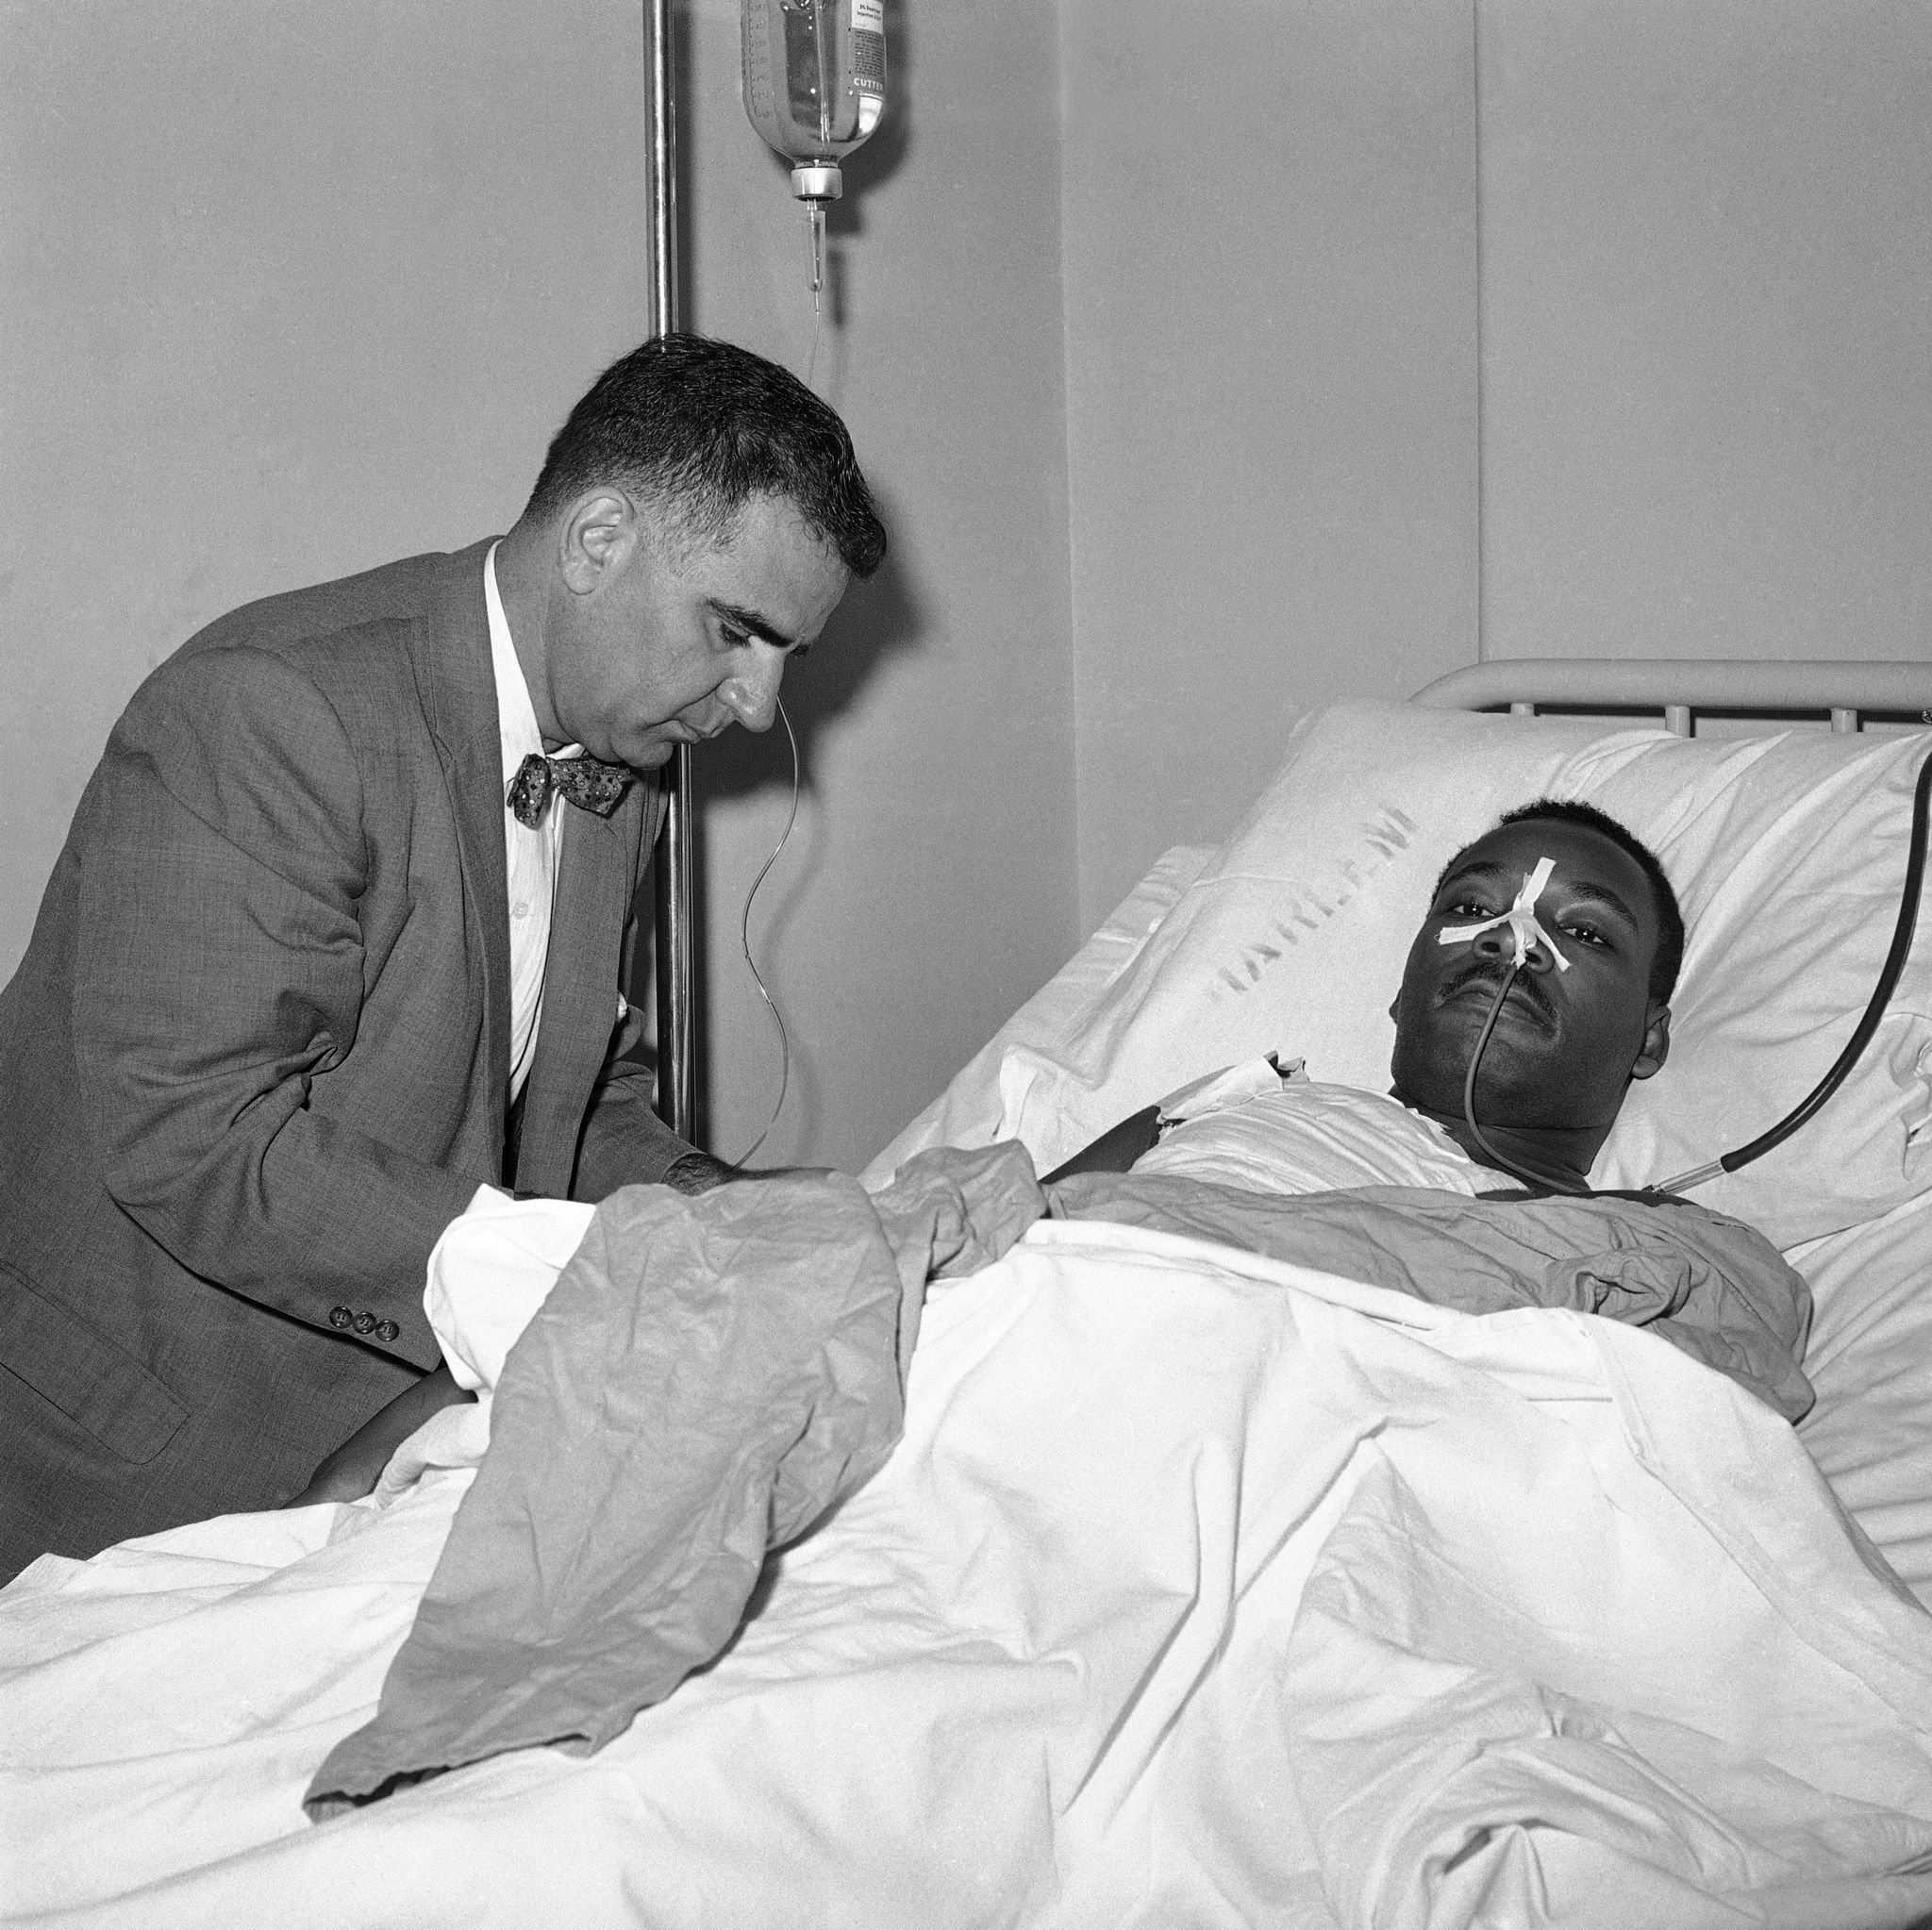 Did you know that the first assassination attempt on Rev. Dr. Martin Luther King